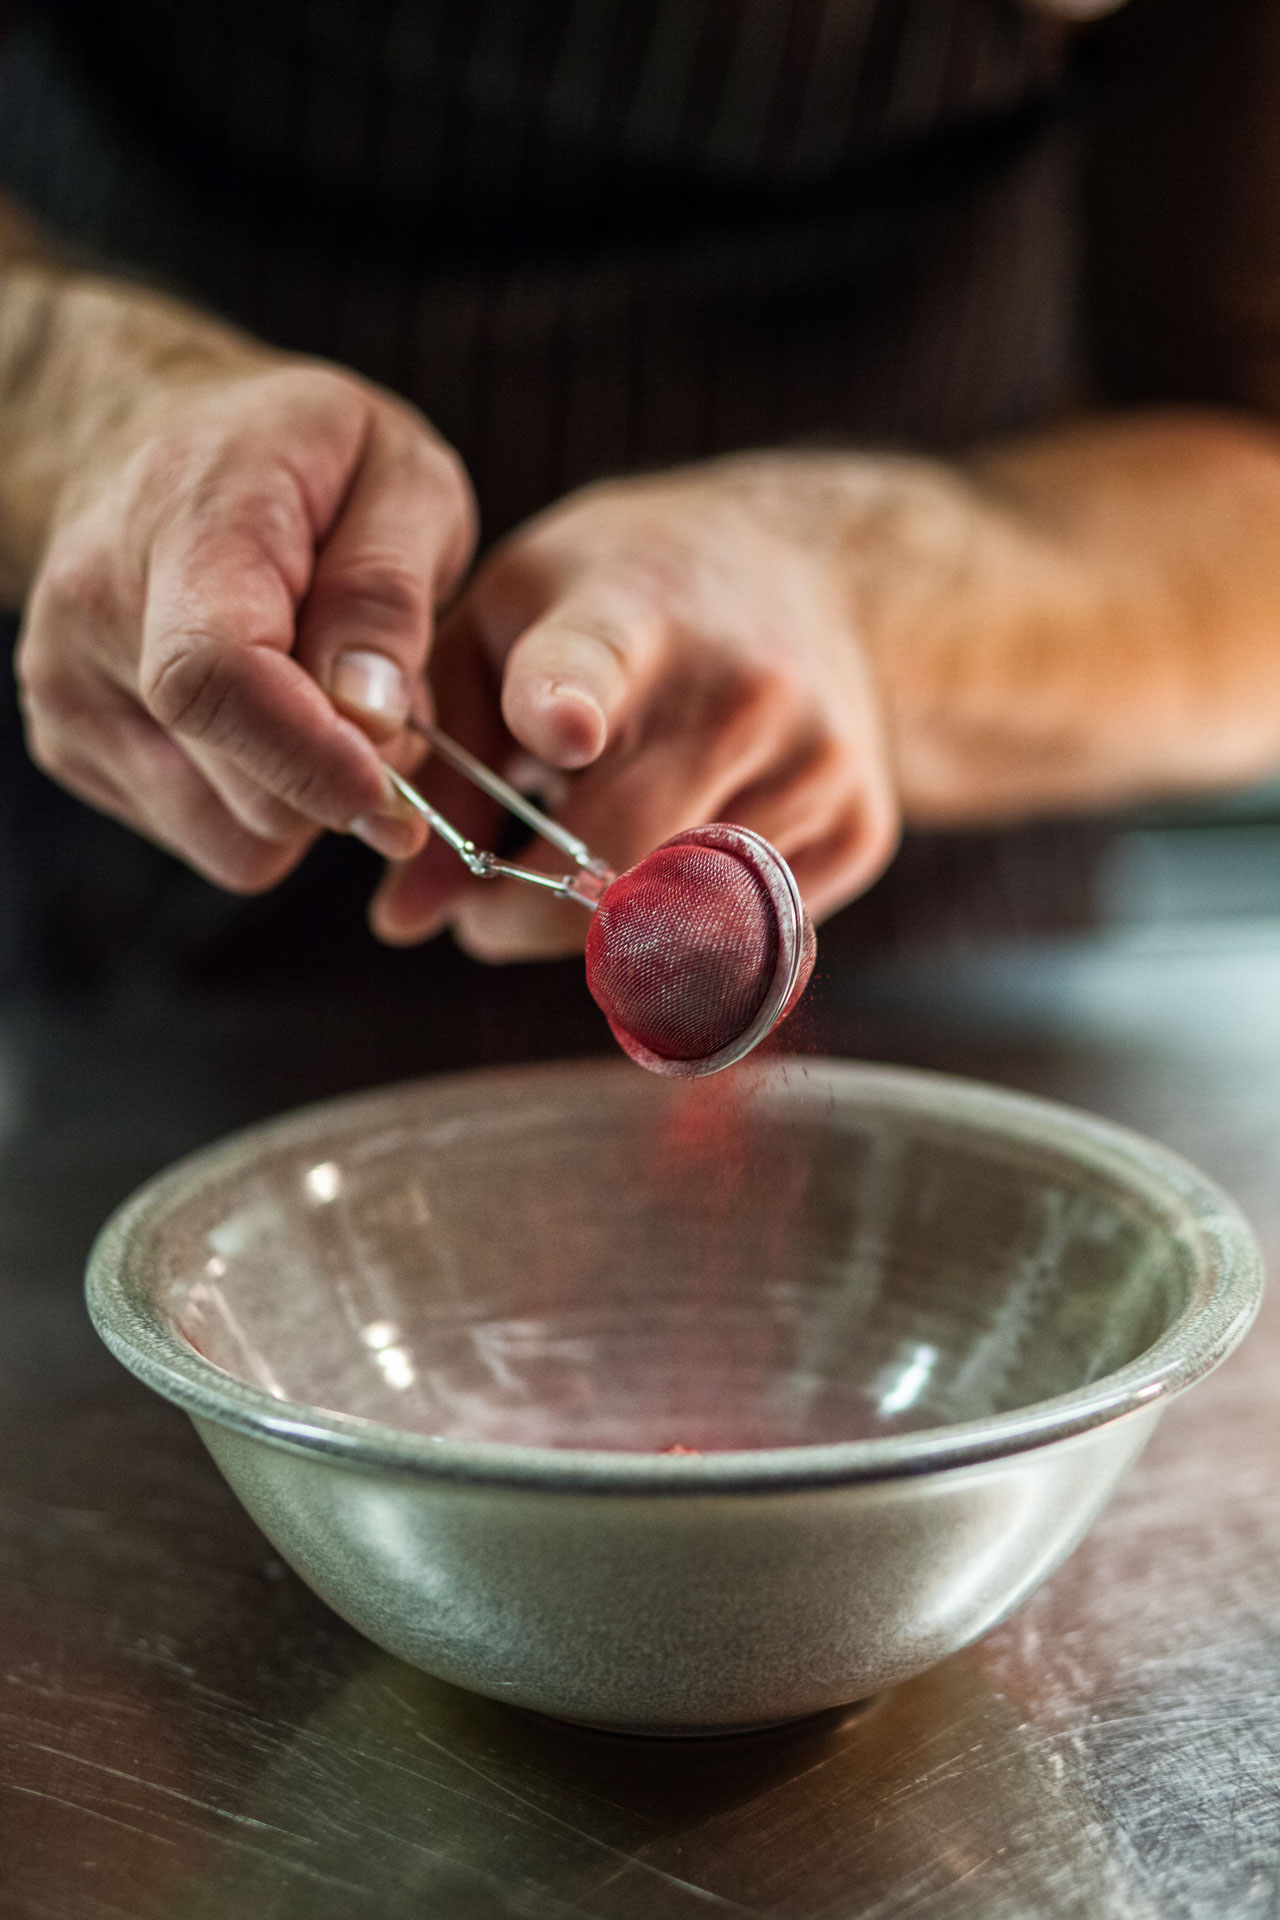 Michelin Star Chef Radek Kasparek preparing beetroot in the kitchen of his restaurant Field